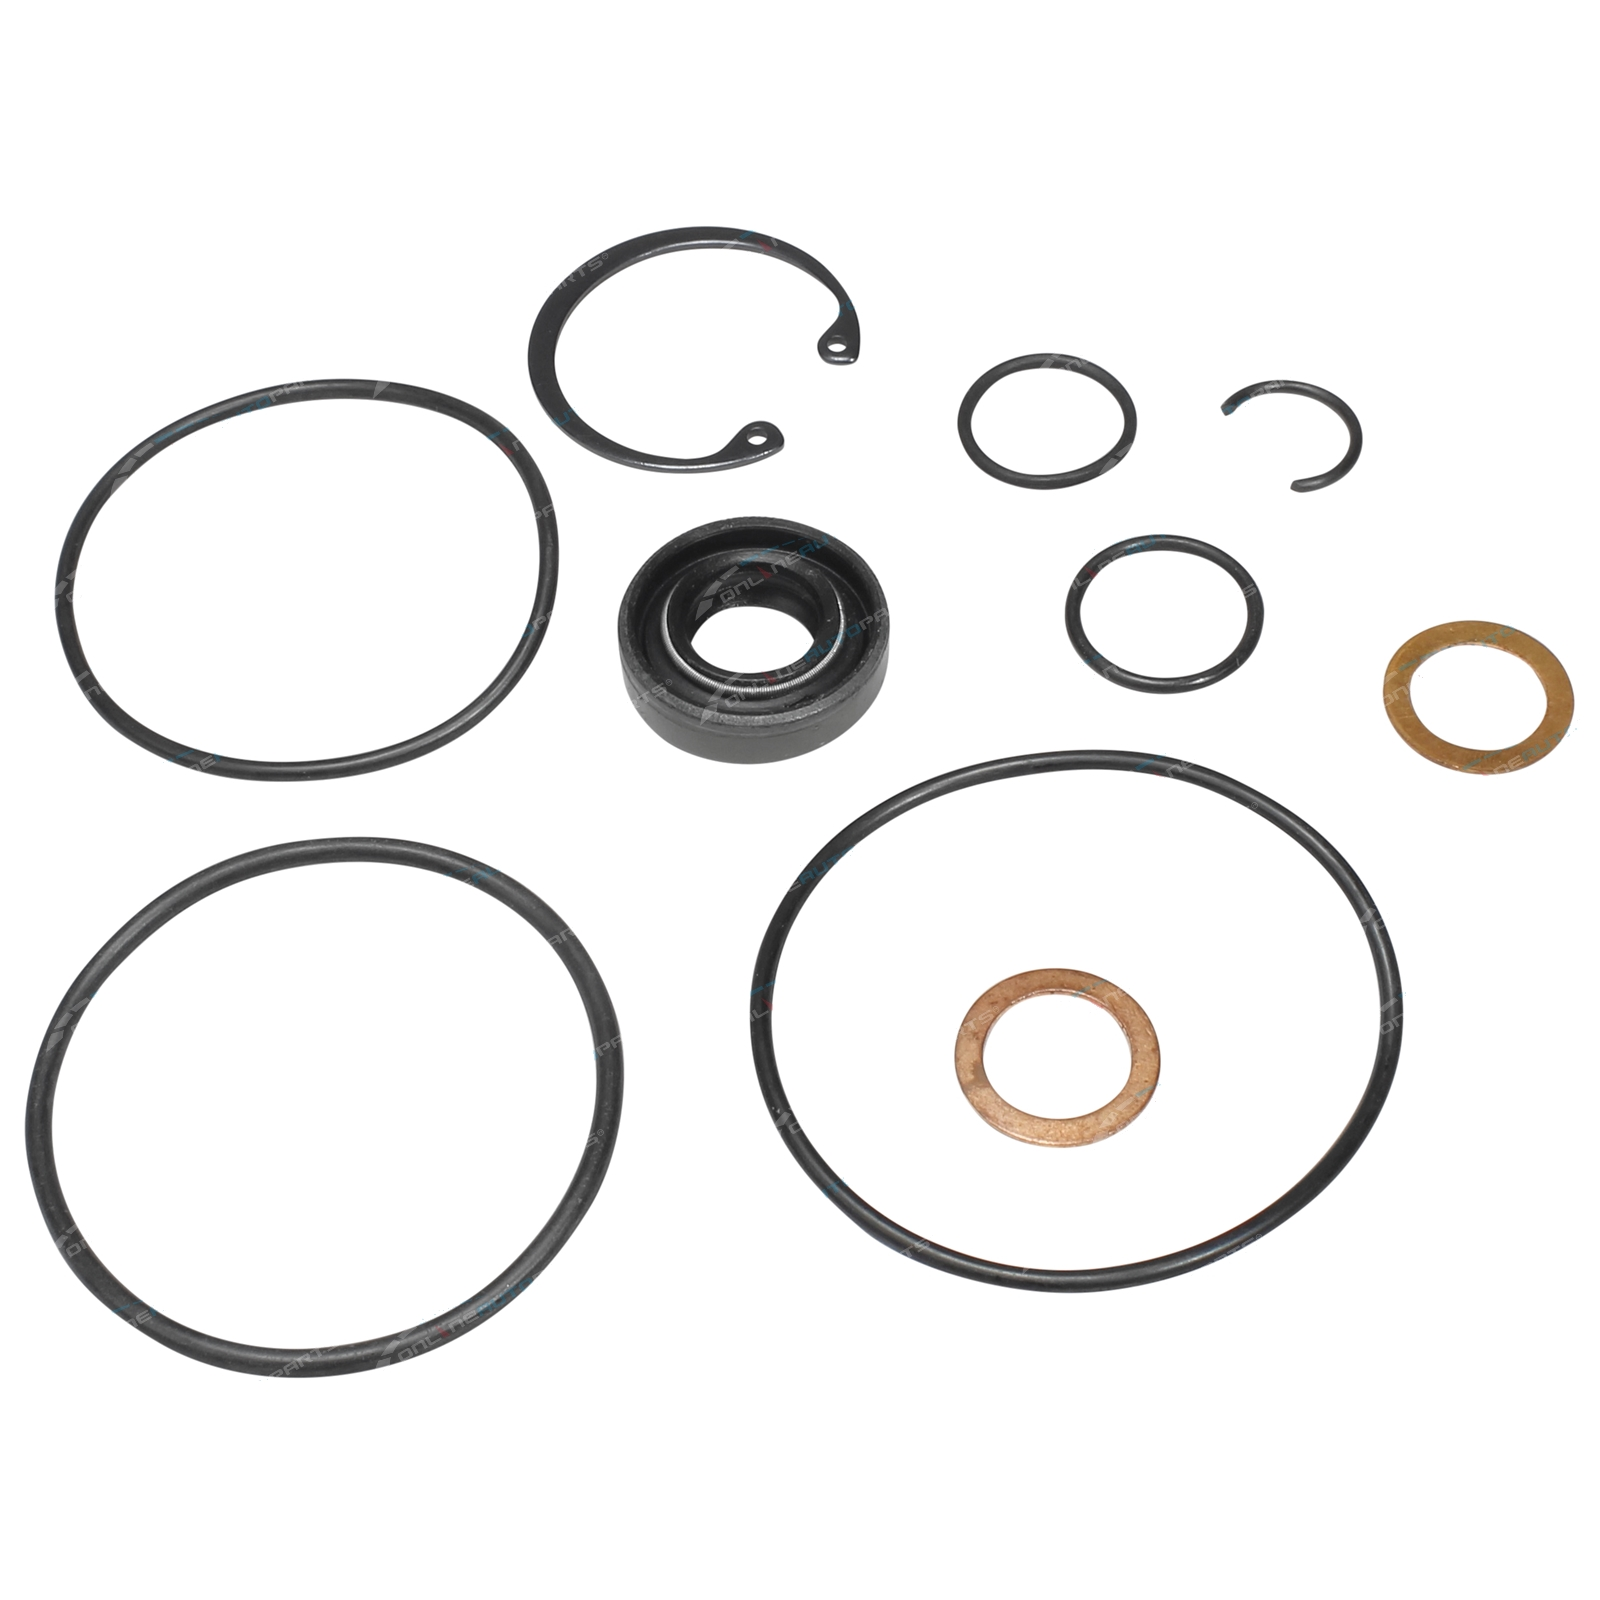 Power Steering Pump Seal Kit suits Toyota Landcruiser Diesel 75 80 100  Series 1HZ 4 2L